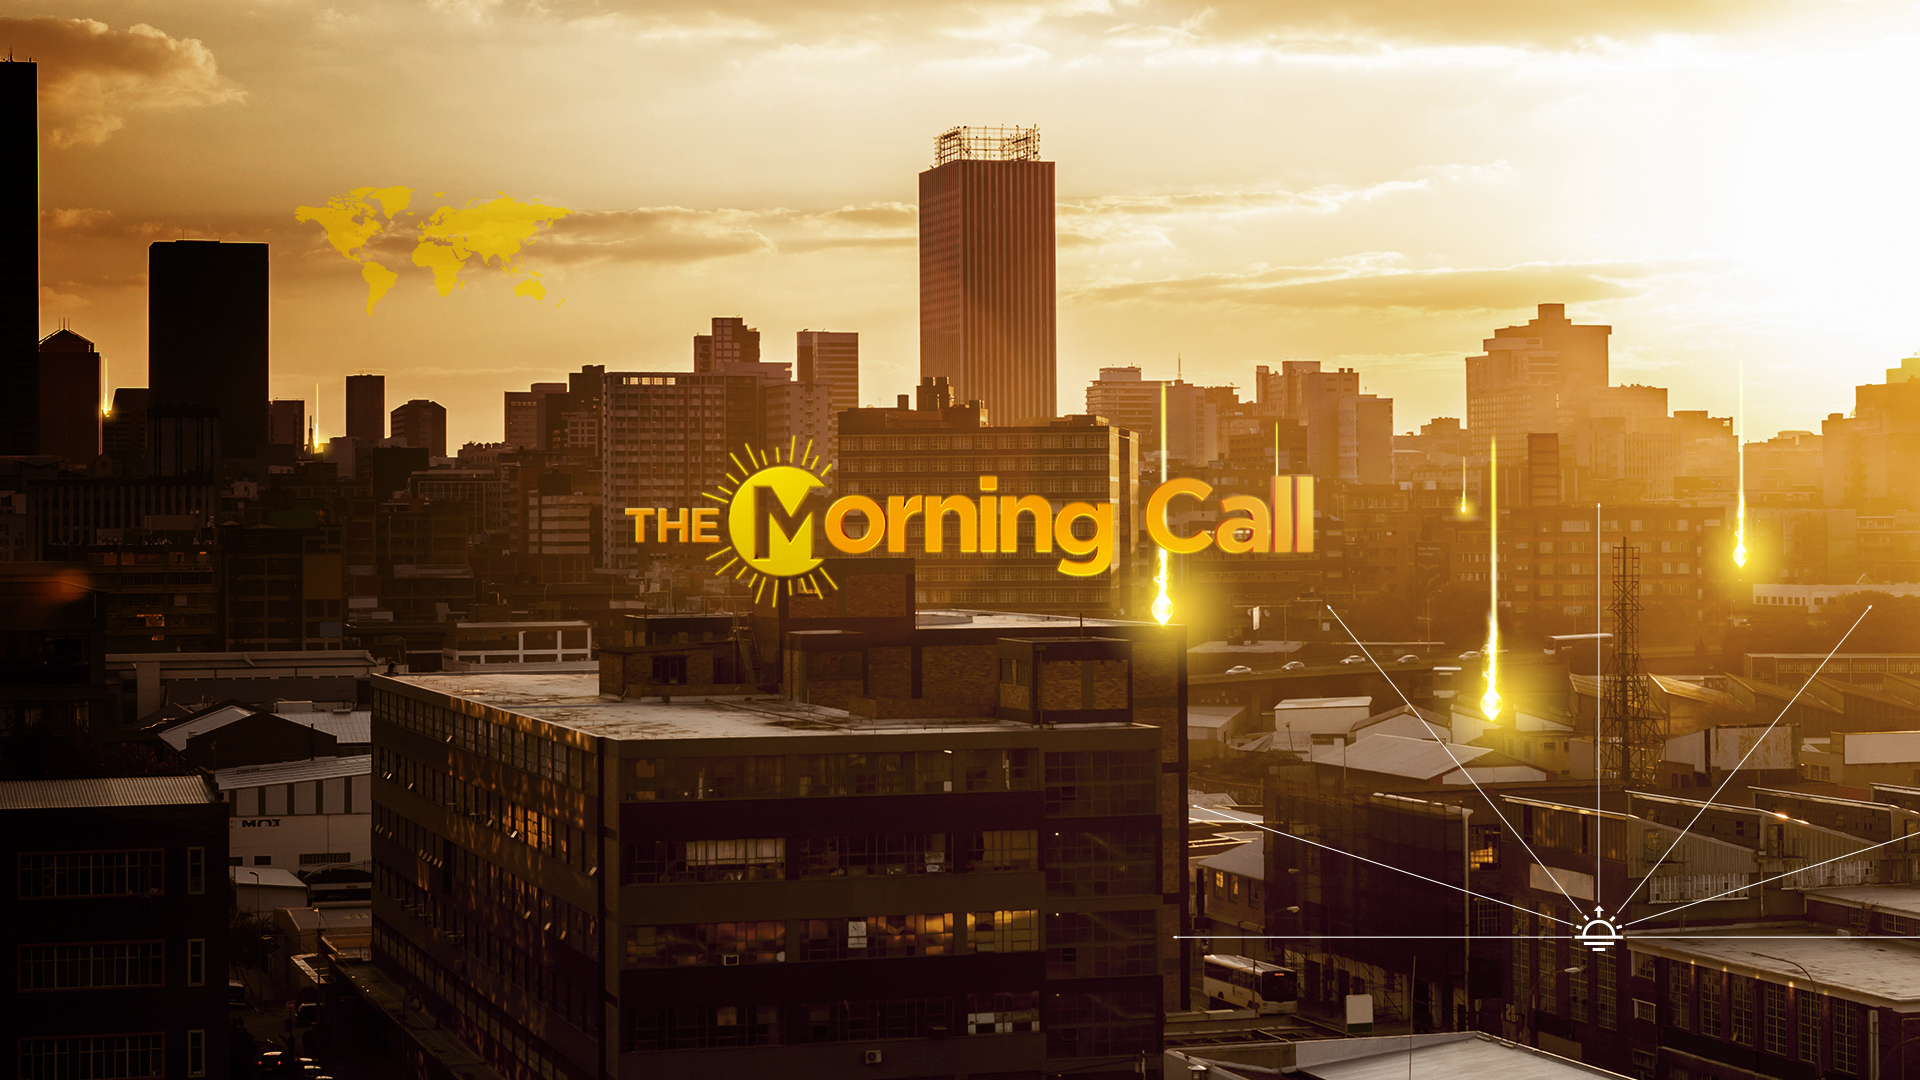 The Morning Call is an interactive daily programme. ​Co-hosted by two anchors.he talk-show format provides advice and perspective from correspondents in the field alongside ​analysts and experts. Covering politics, business ​reports, sports and entertainment. ​,as well as healthier eating or ​a step-by-step guide to improving your well-being.